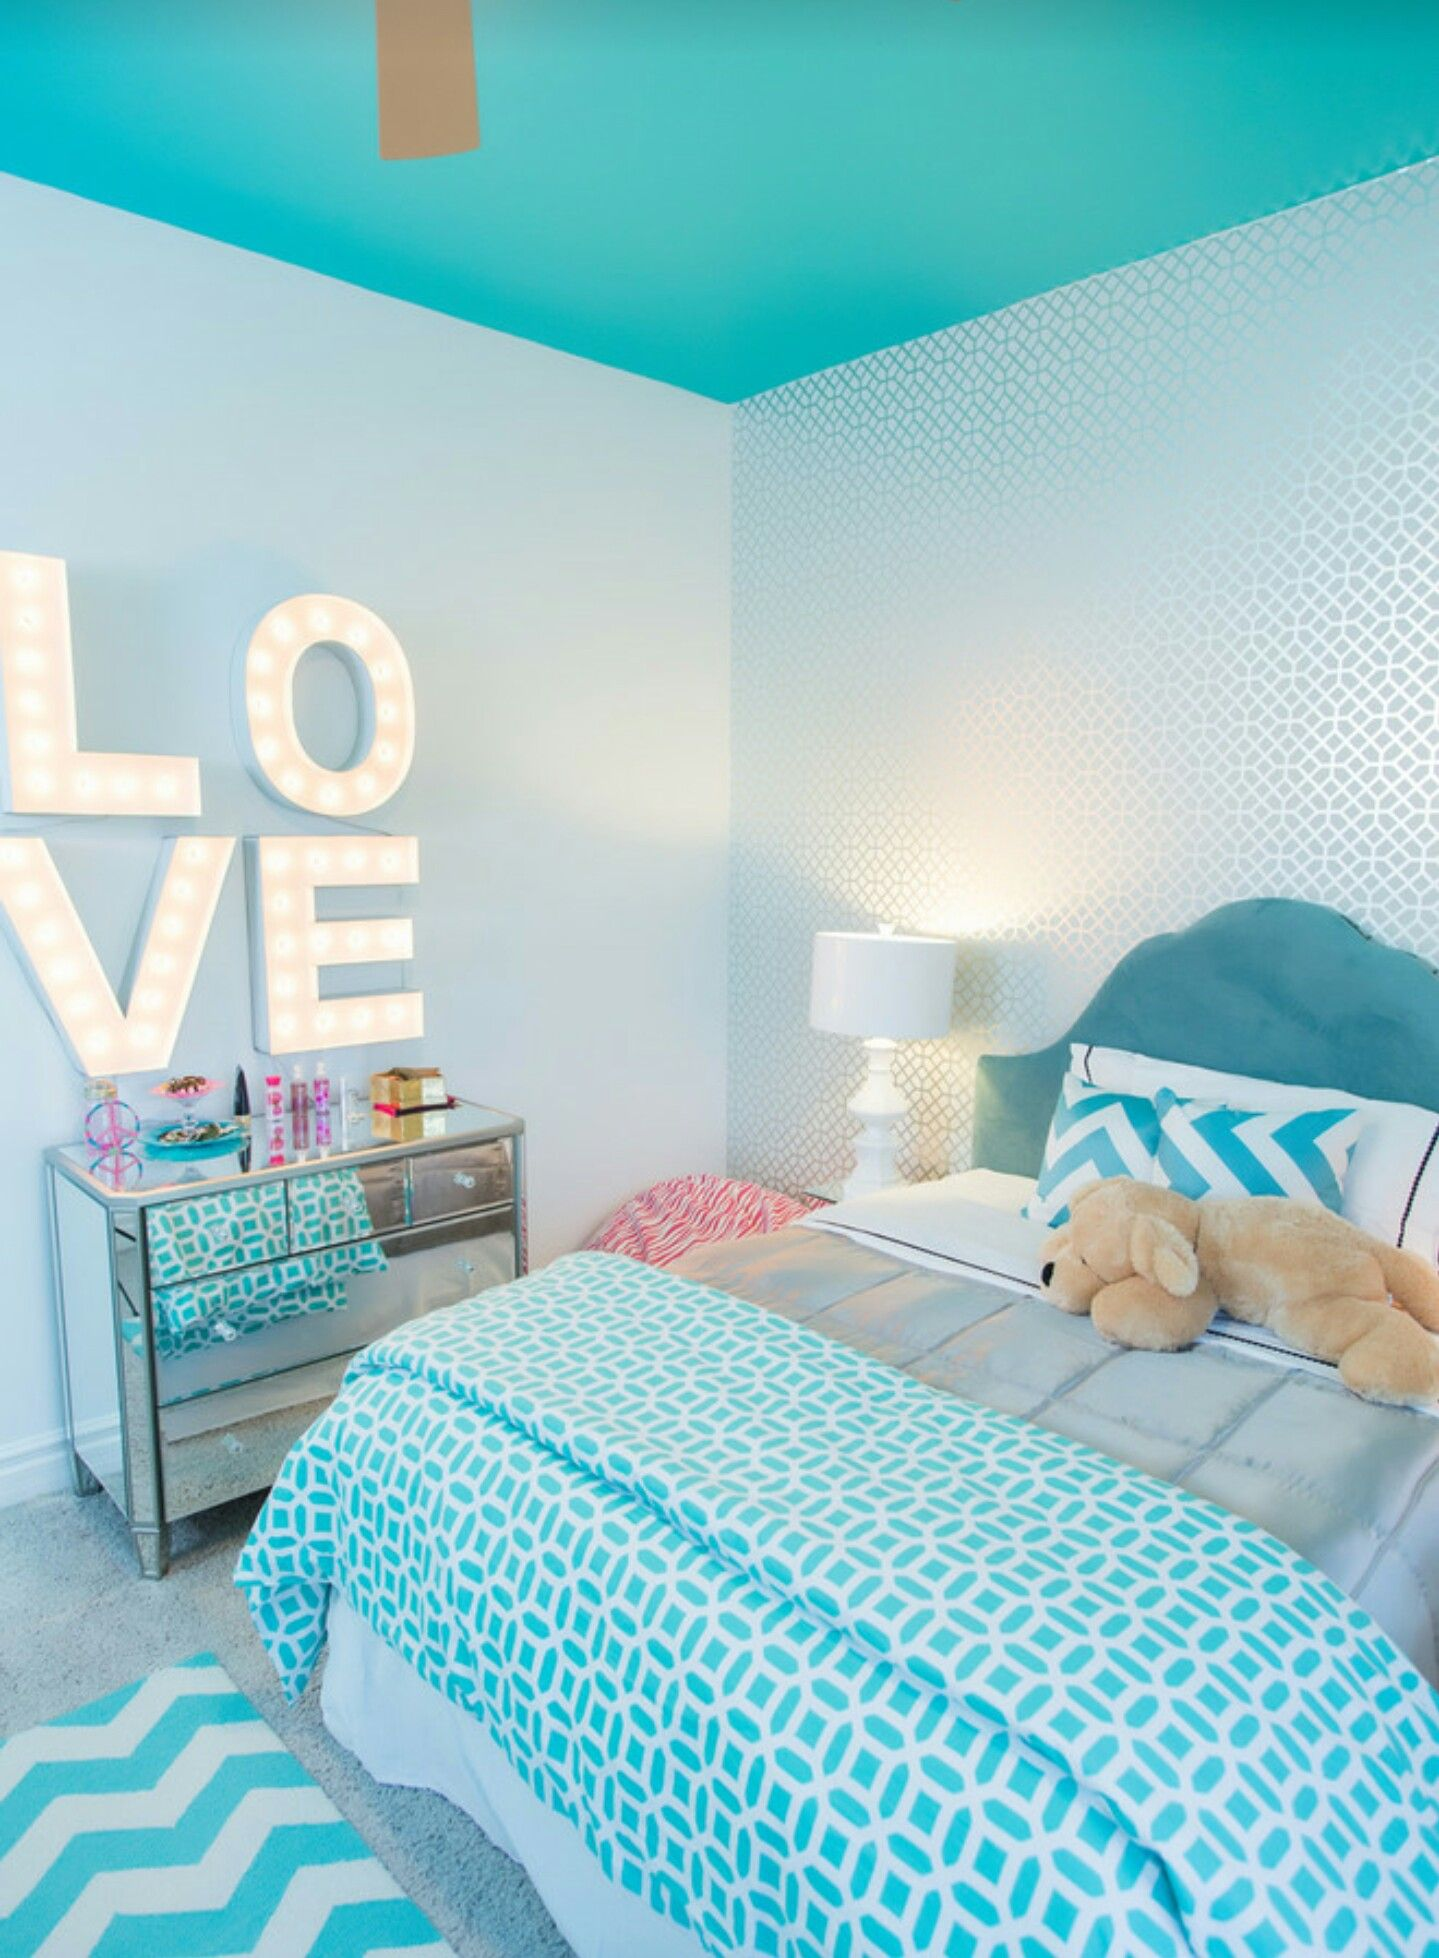 Teen Bedroom Inspiration Turquoise Room Ideas Architecture Inspiration